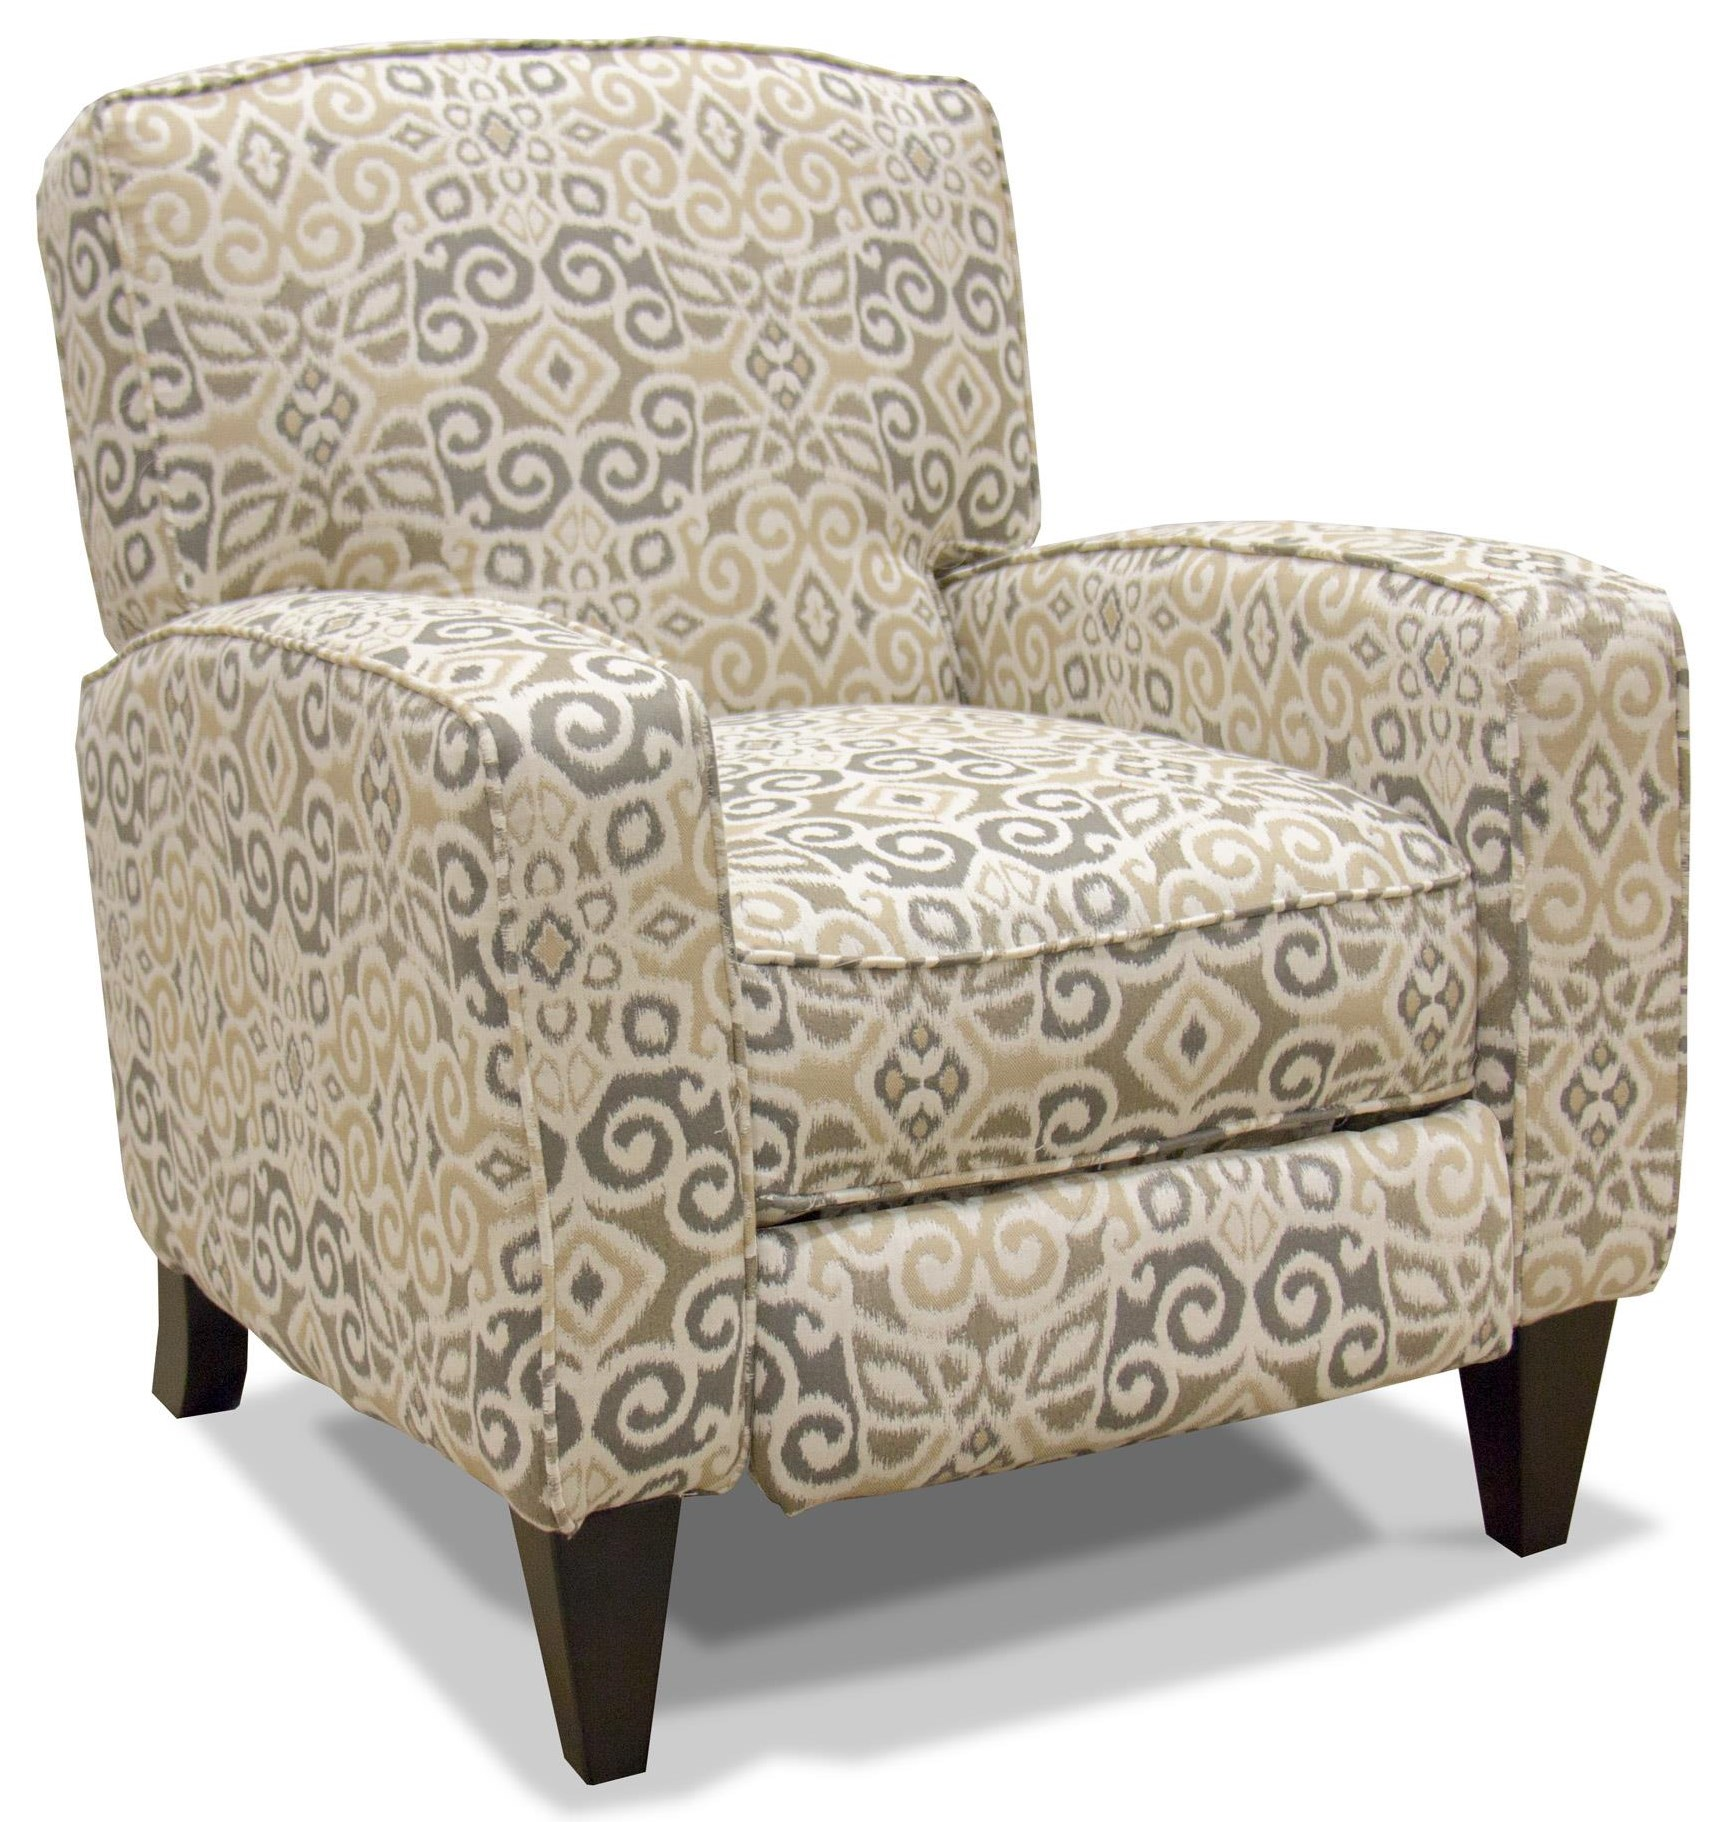 Lucy Driftwood Pushback Recliner